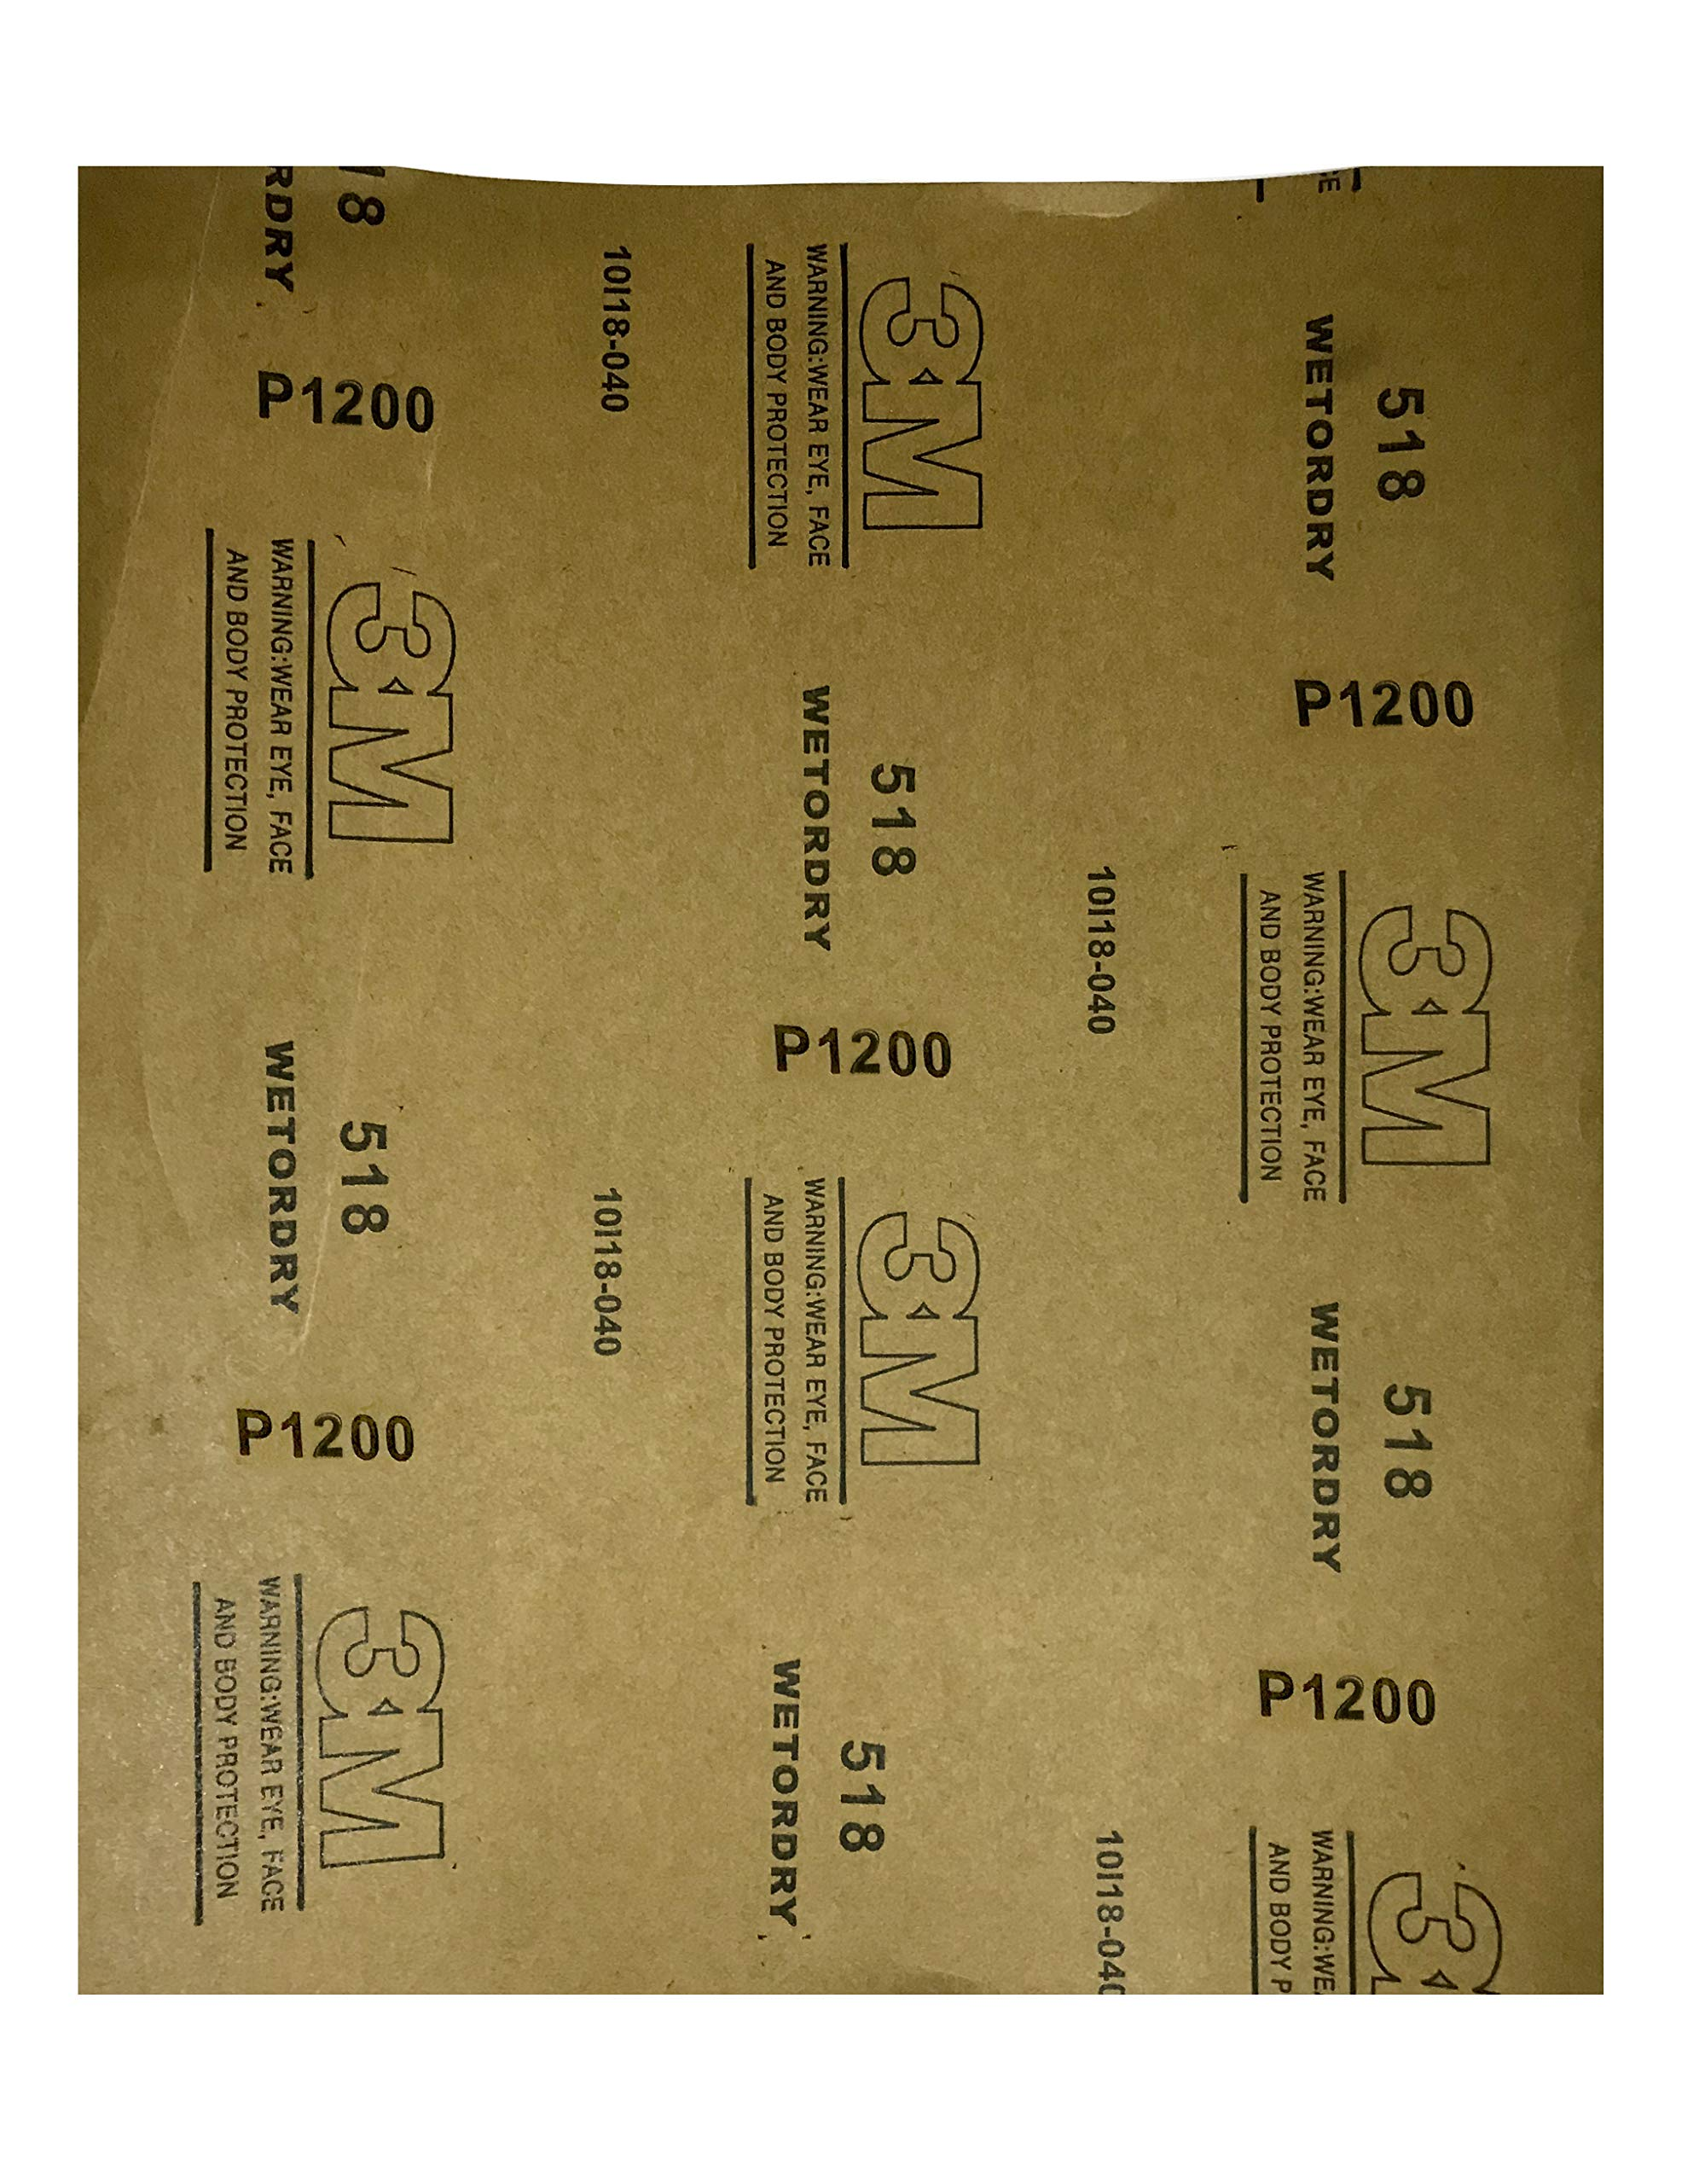 Amazon price history for 3M Sand Paper 1200 Grit Wet and Dry (Black) (Pack of 5)